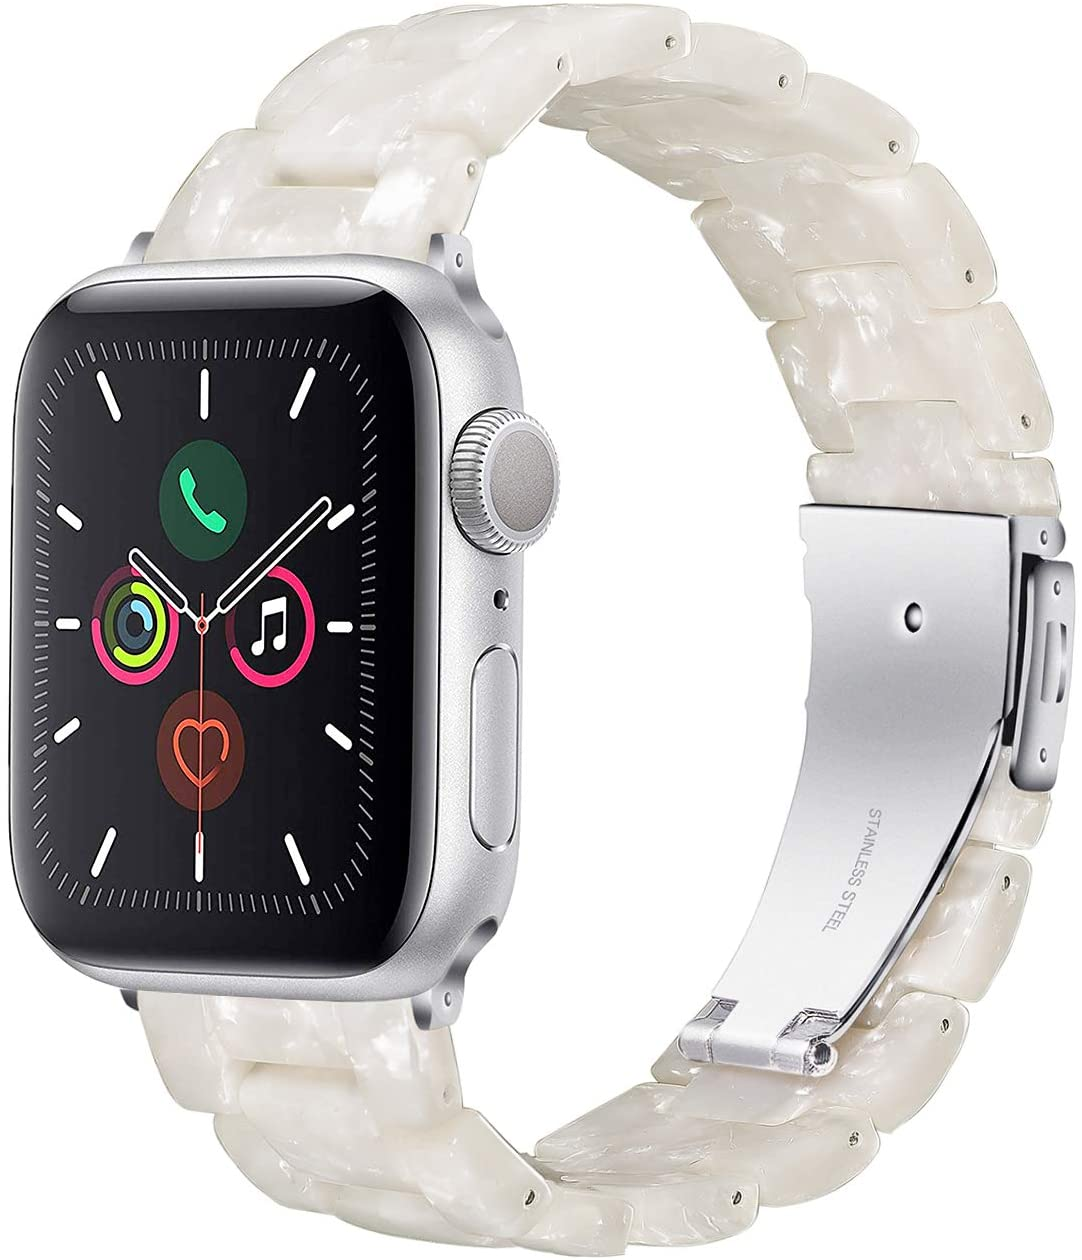 Wongeto Compatible with Apple Watch Band 42mm 44mm Womens for iWatch SE Resin Wristbands with Stainless Steel Metal Buckle Replacement Dressy Bracelet Strap Series 6 5 4 3 2 1 (Pearl White, 42/44mm)